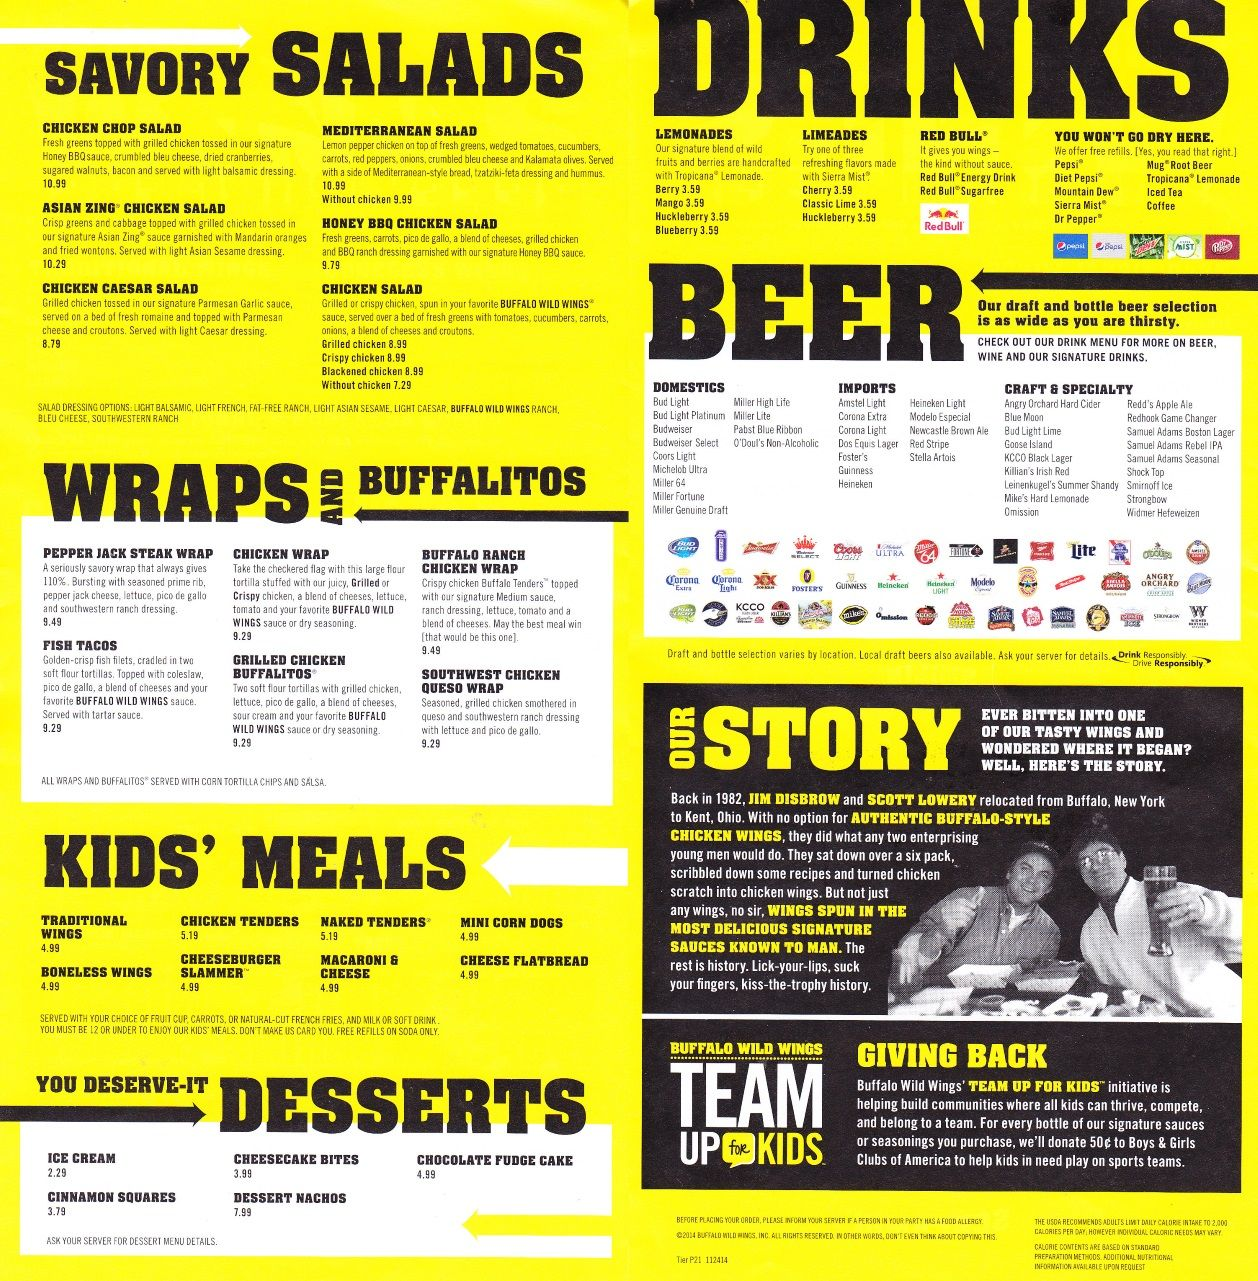 photograph regarding Buffalo Wild Wings Printable Menu referred to as Picture end result for buffalo wild wings Menu Layout Steak